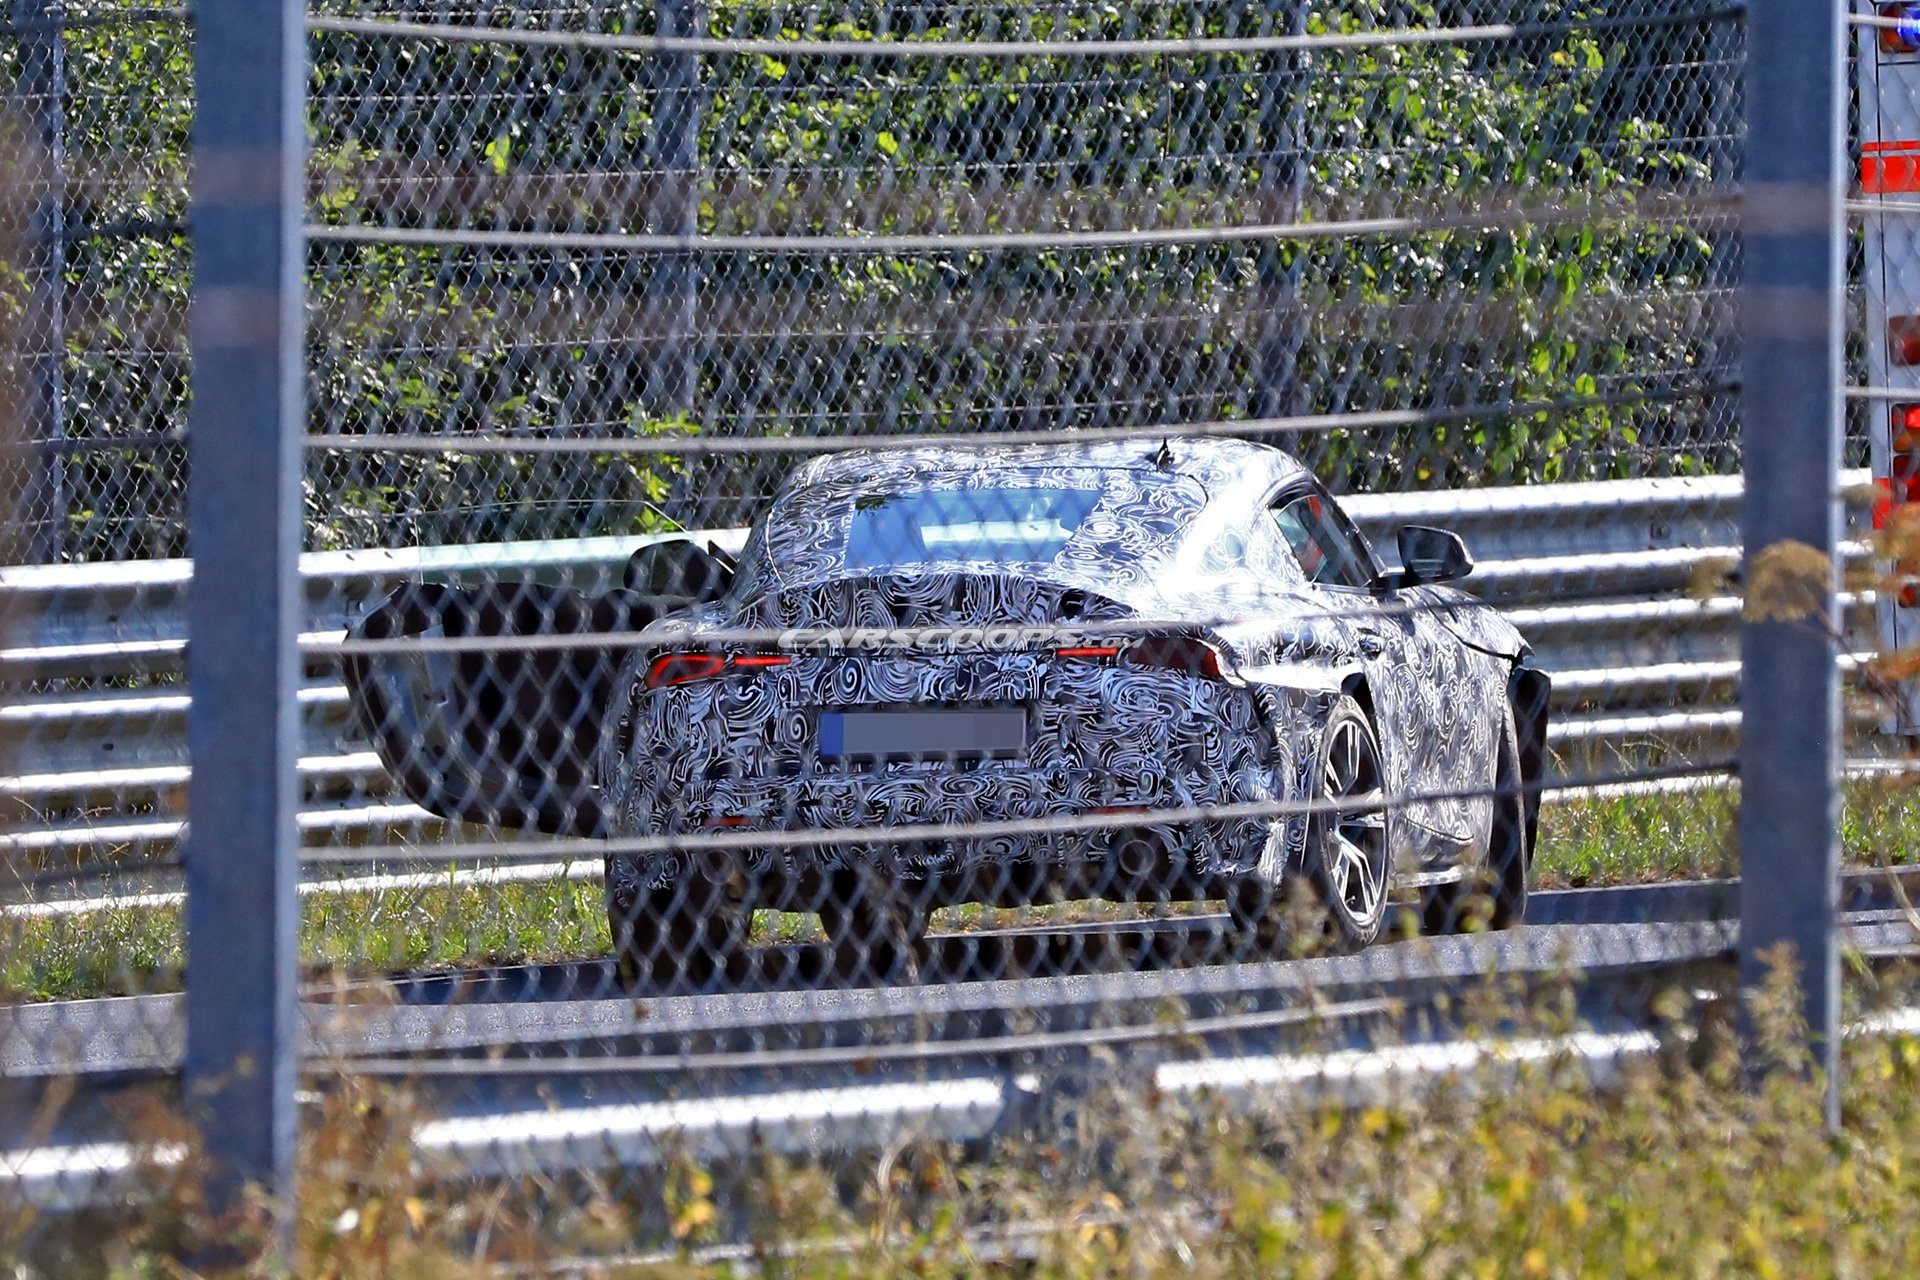 Toyota Supra prototype crashed at the Nürburgring - posted